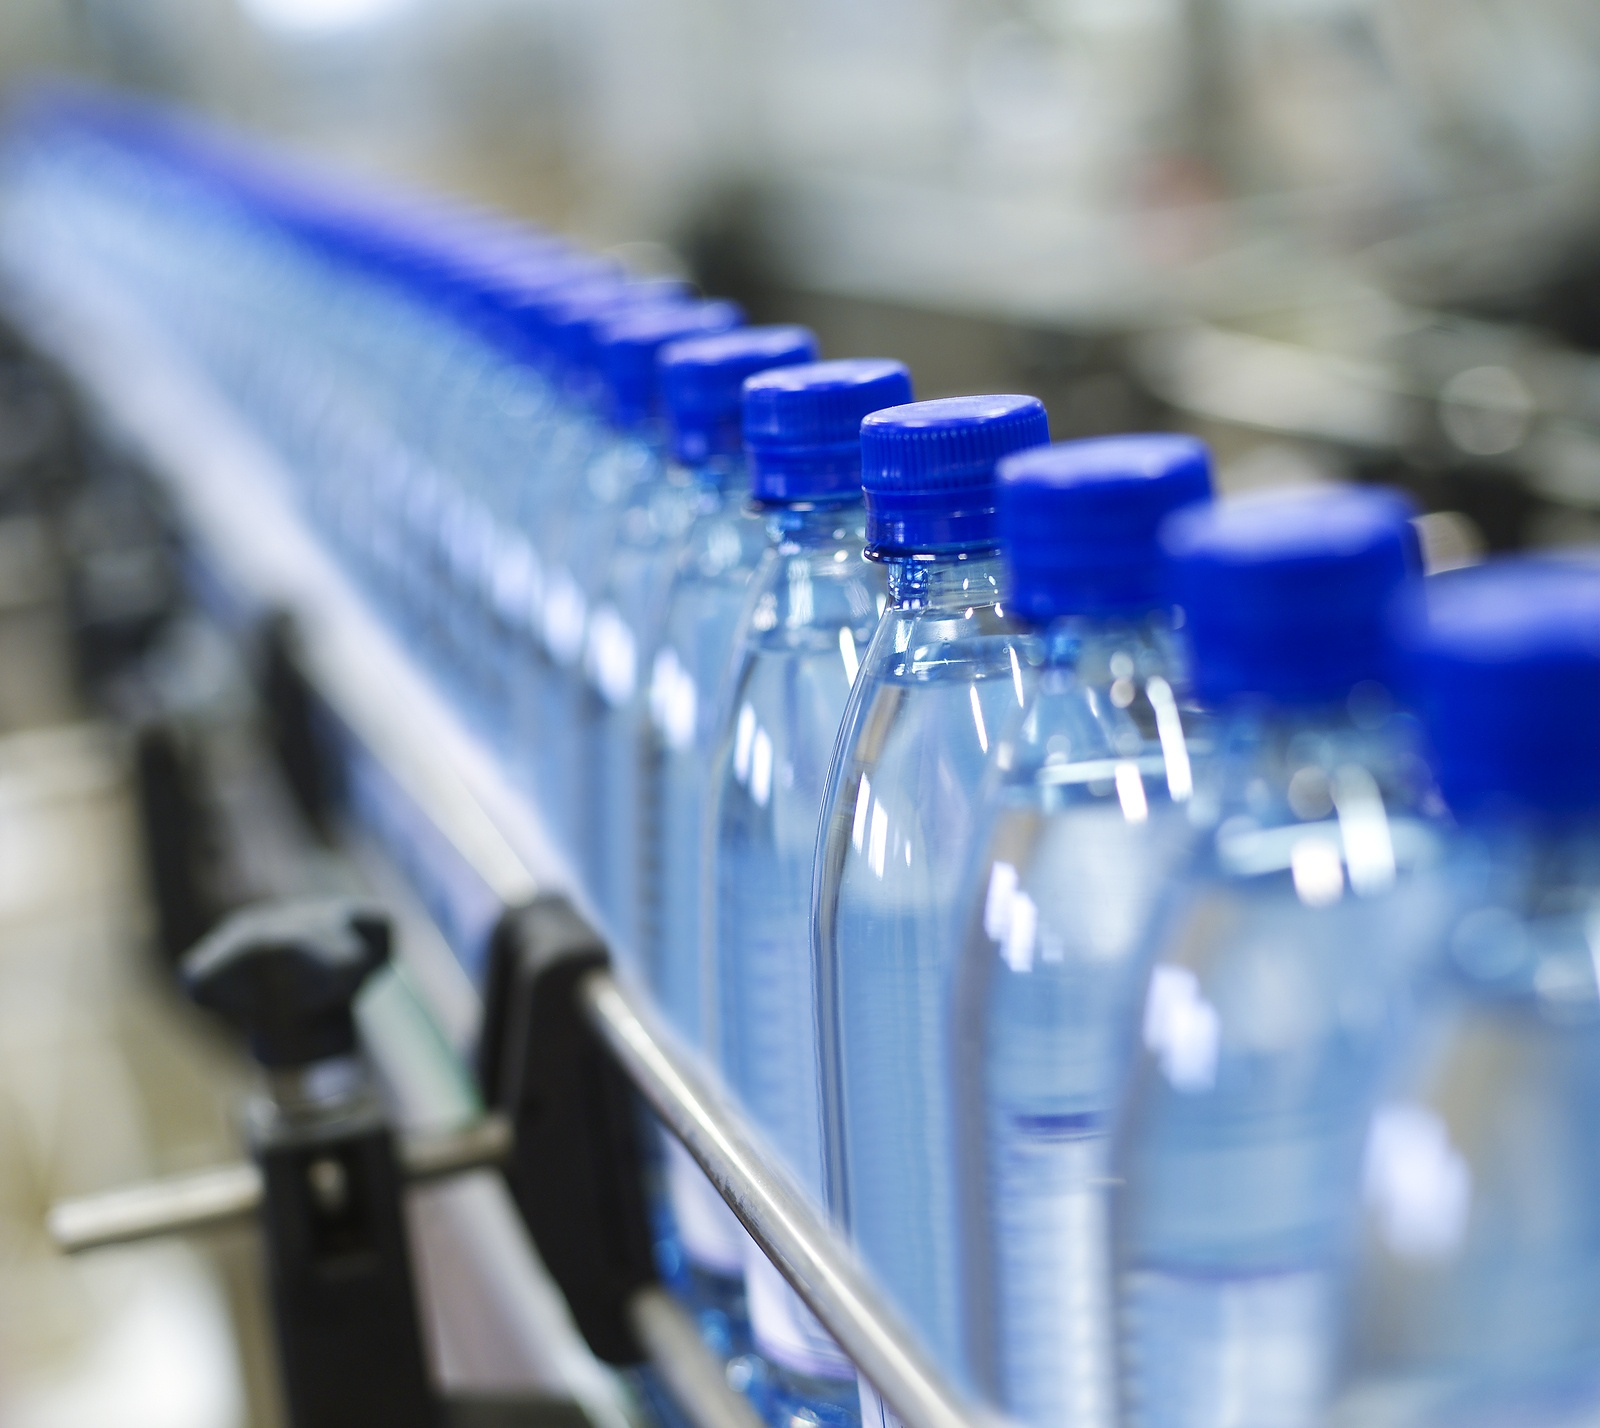 bigstock-Bottle-Industry-30664220.jpg